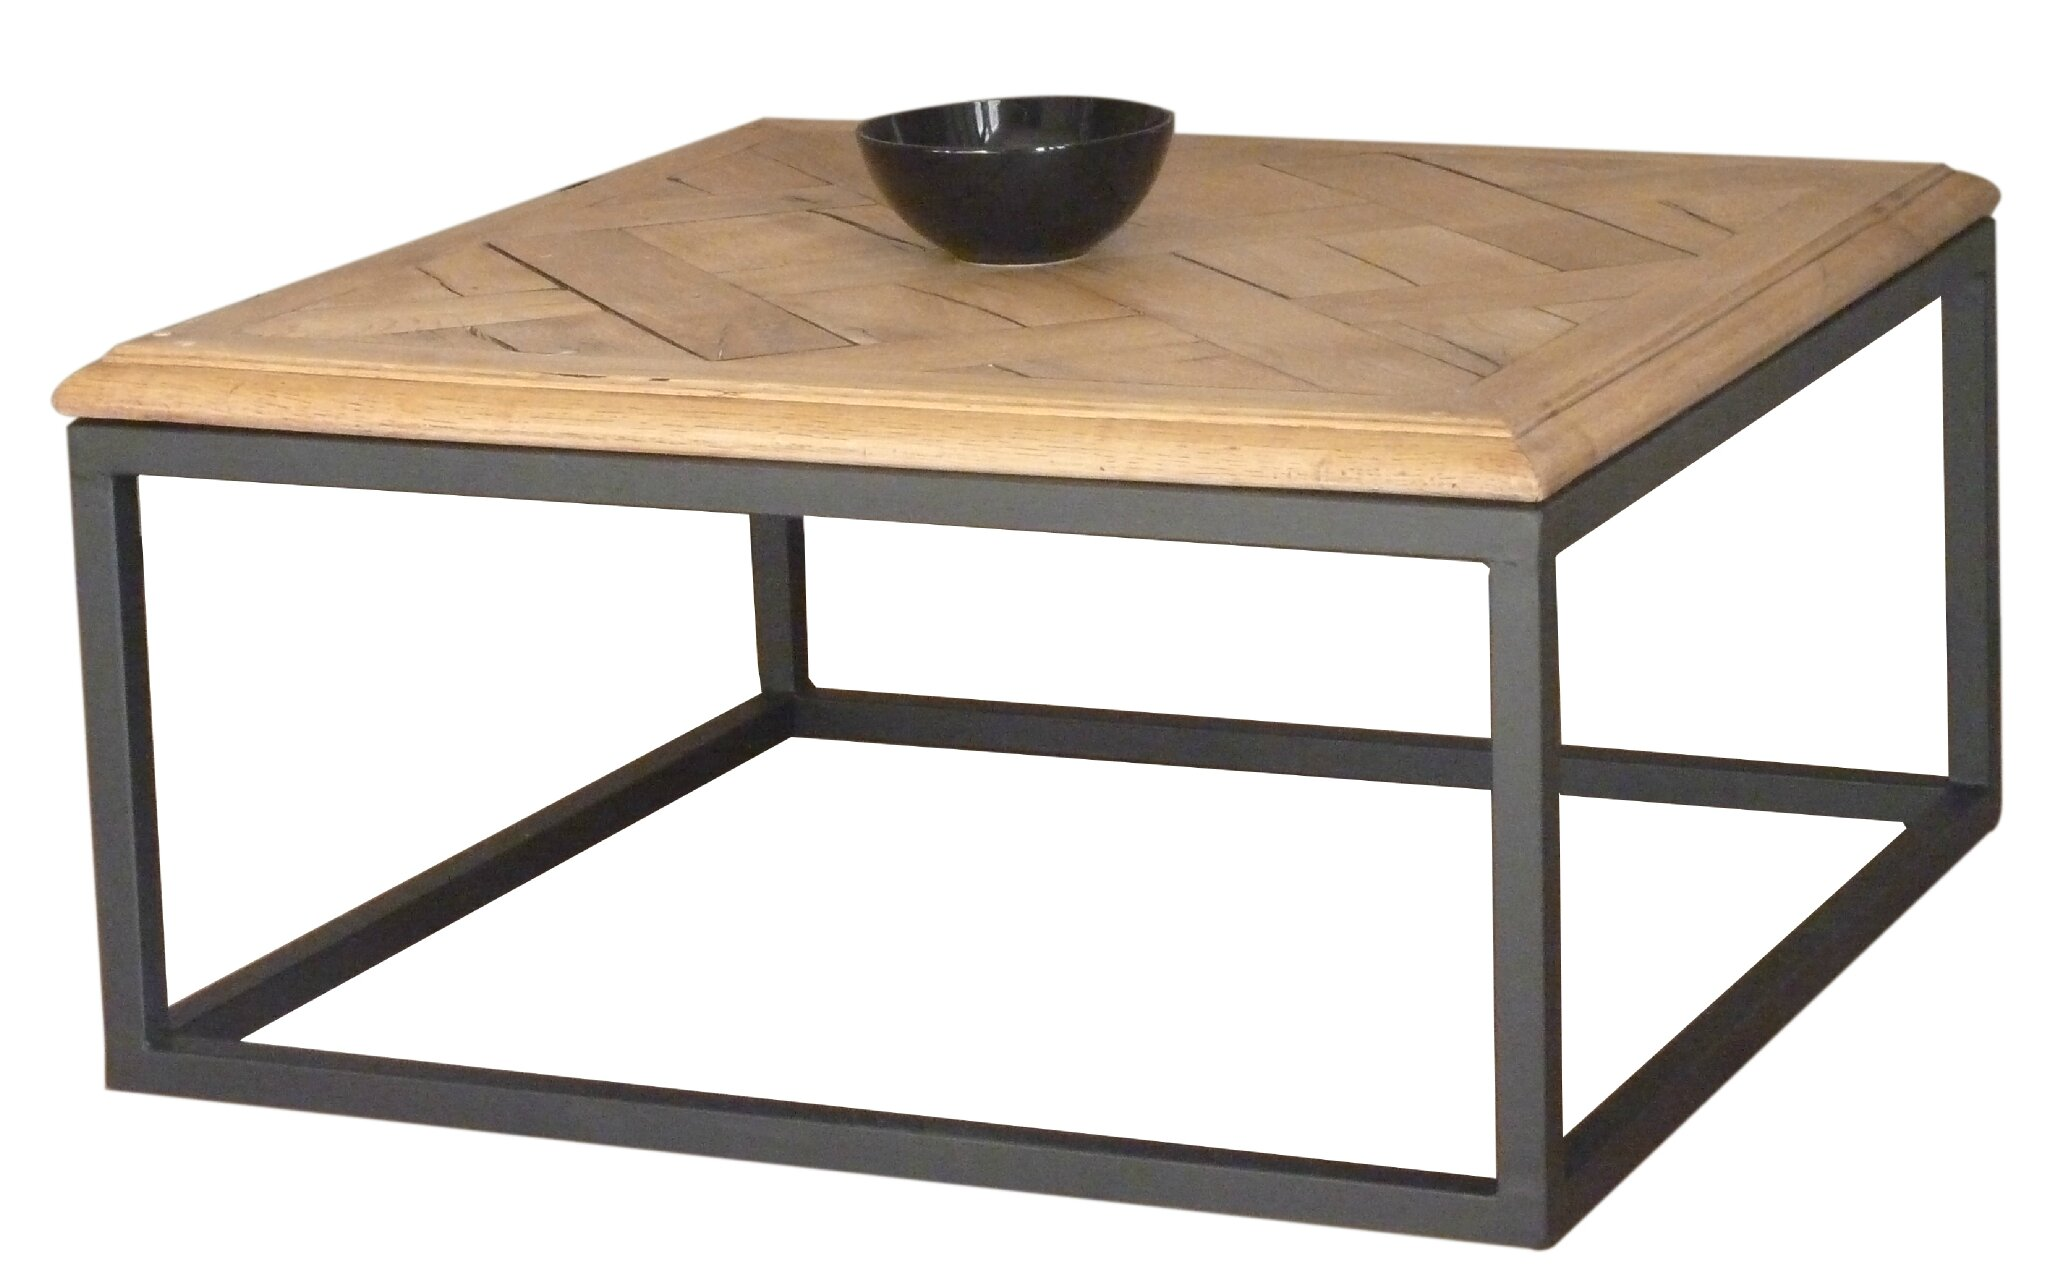 Ma table basse industrielle au 42 home - Table industrielle pas cher ...